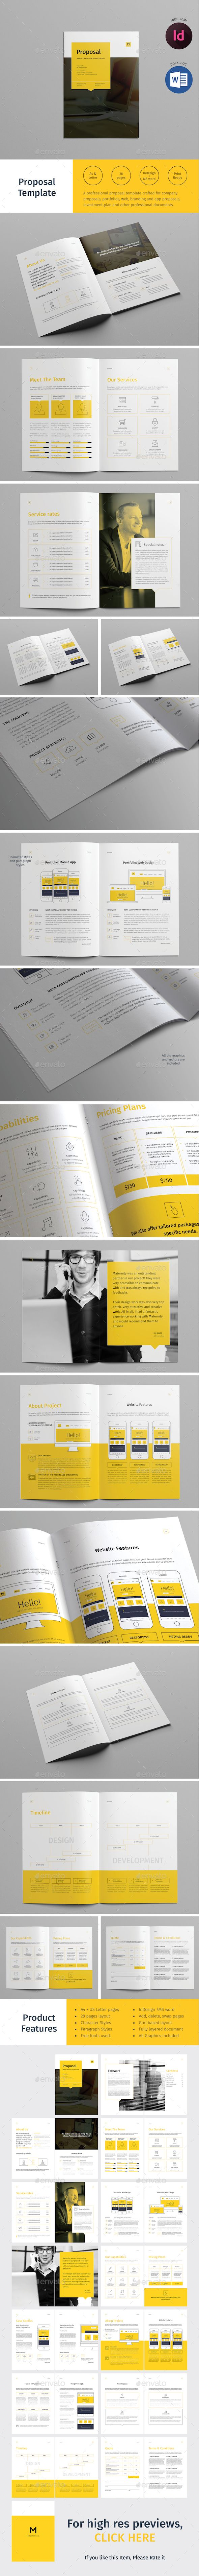 28 Pages Proposal Template InDesign INDD. Download here: http ...